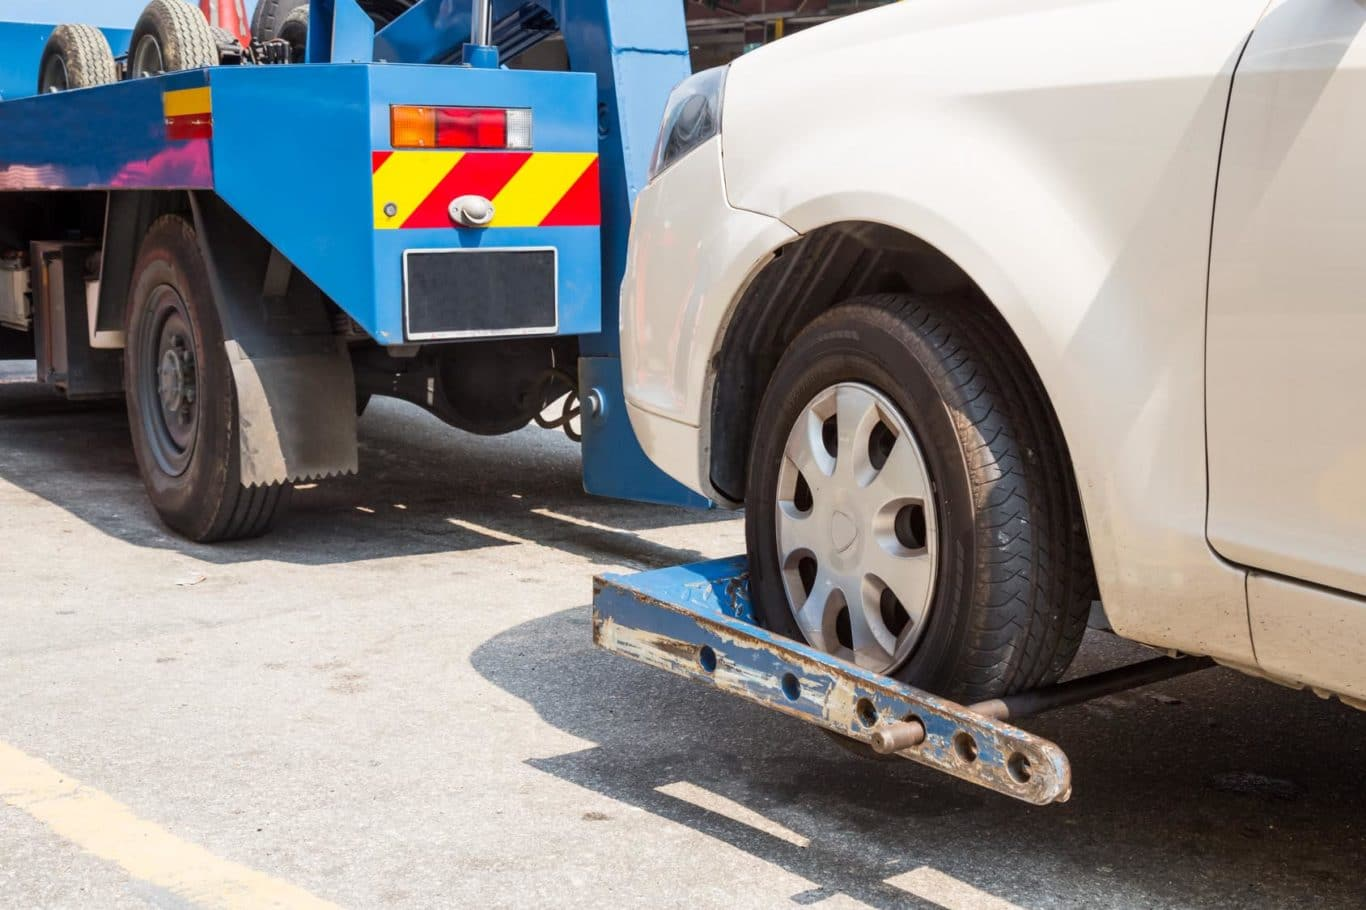 Drogheda expert Breakdown Assistance services